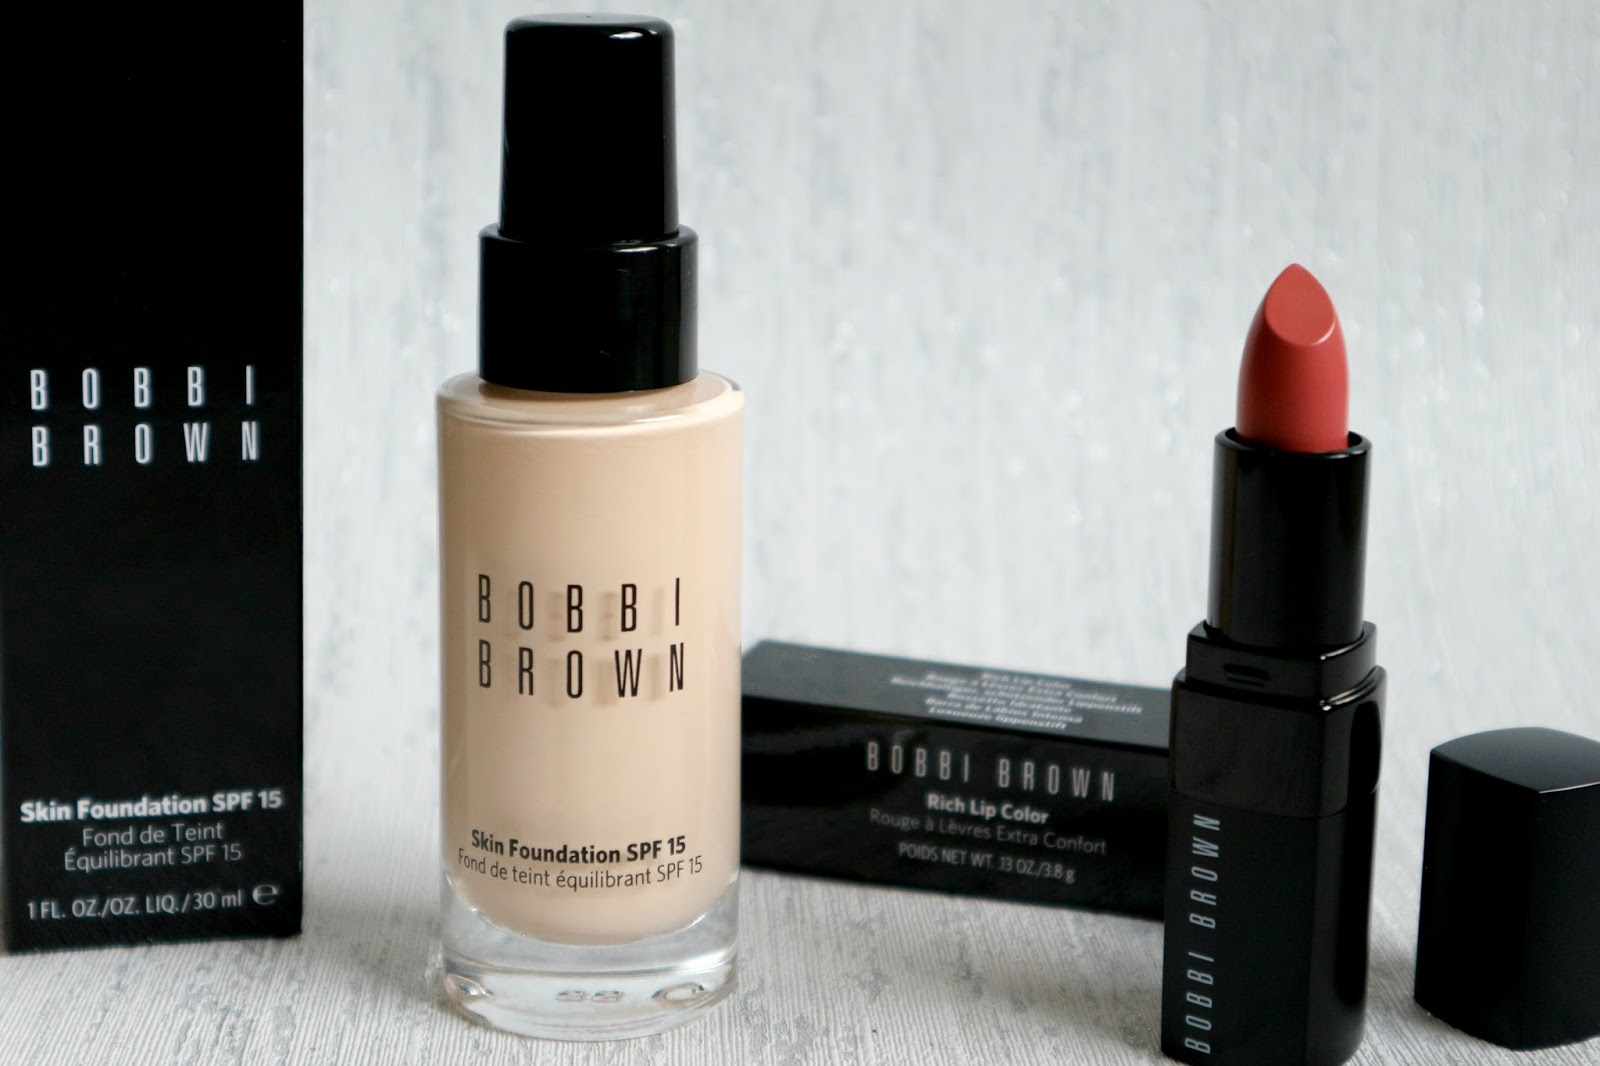 Bobbi Brown House Of Fraser